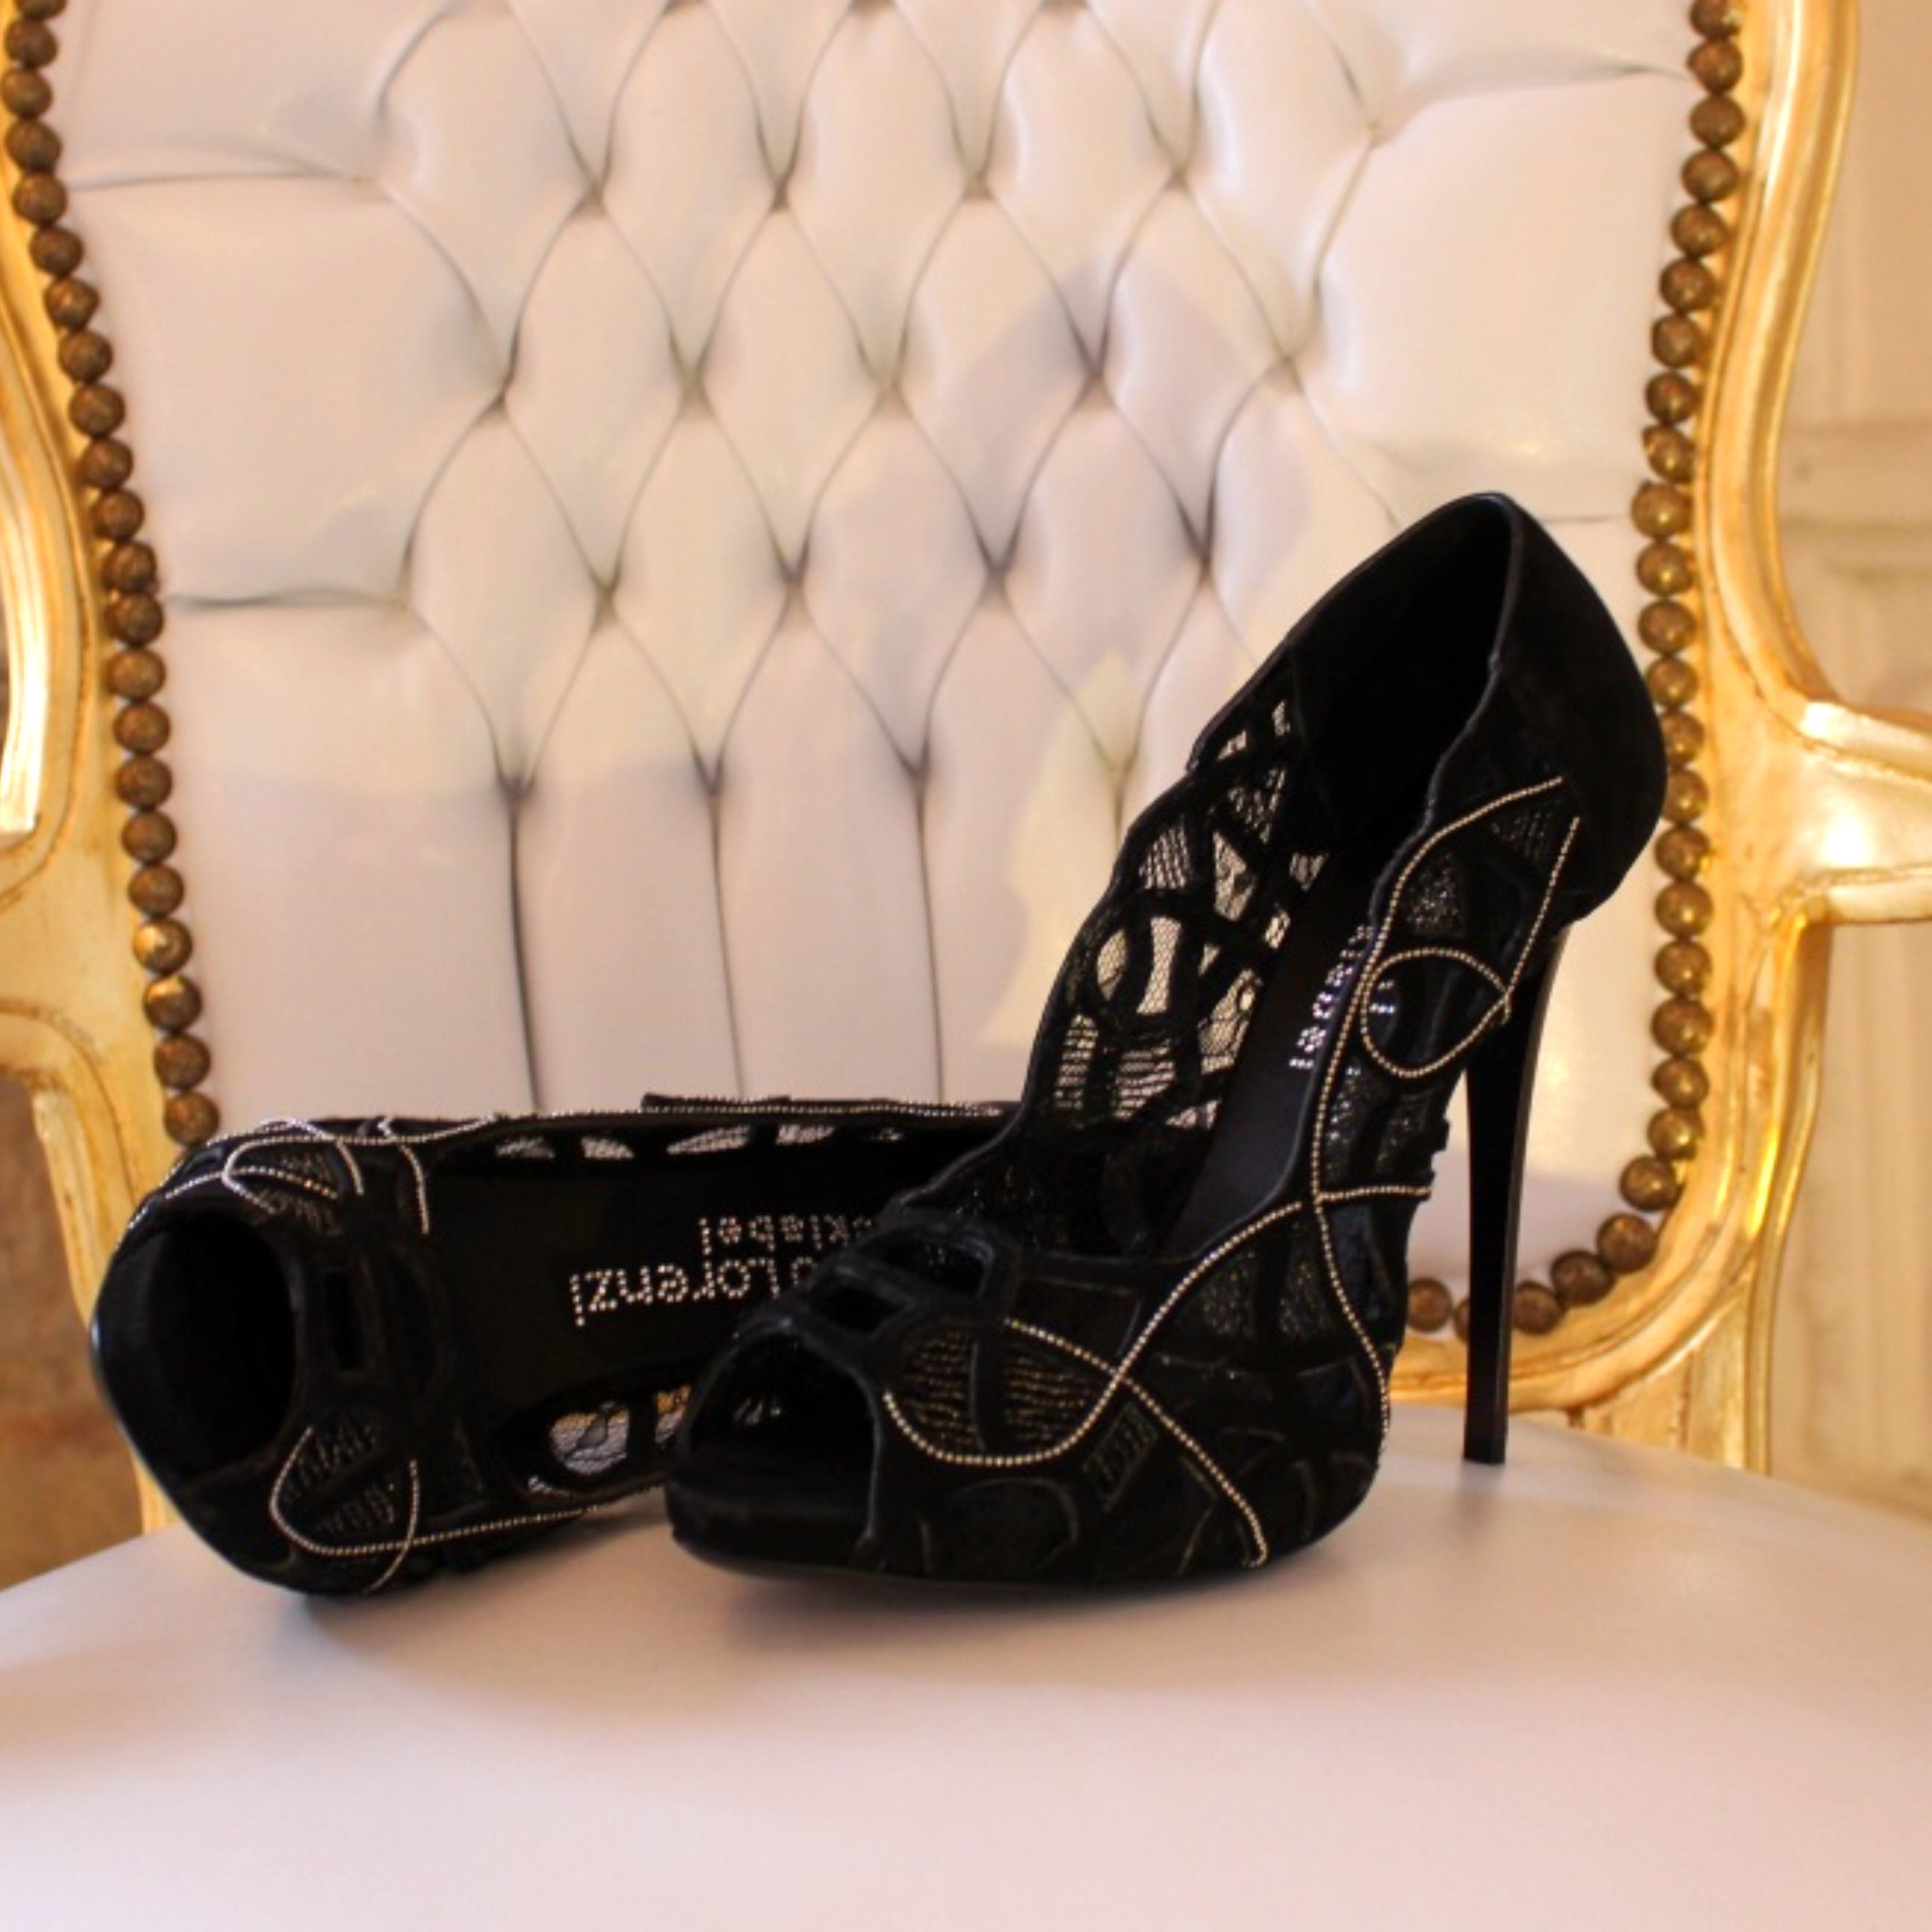 Lorenzi Shoes Black Label